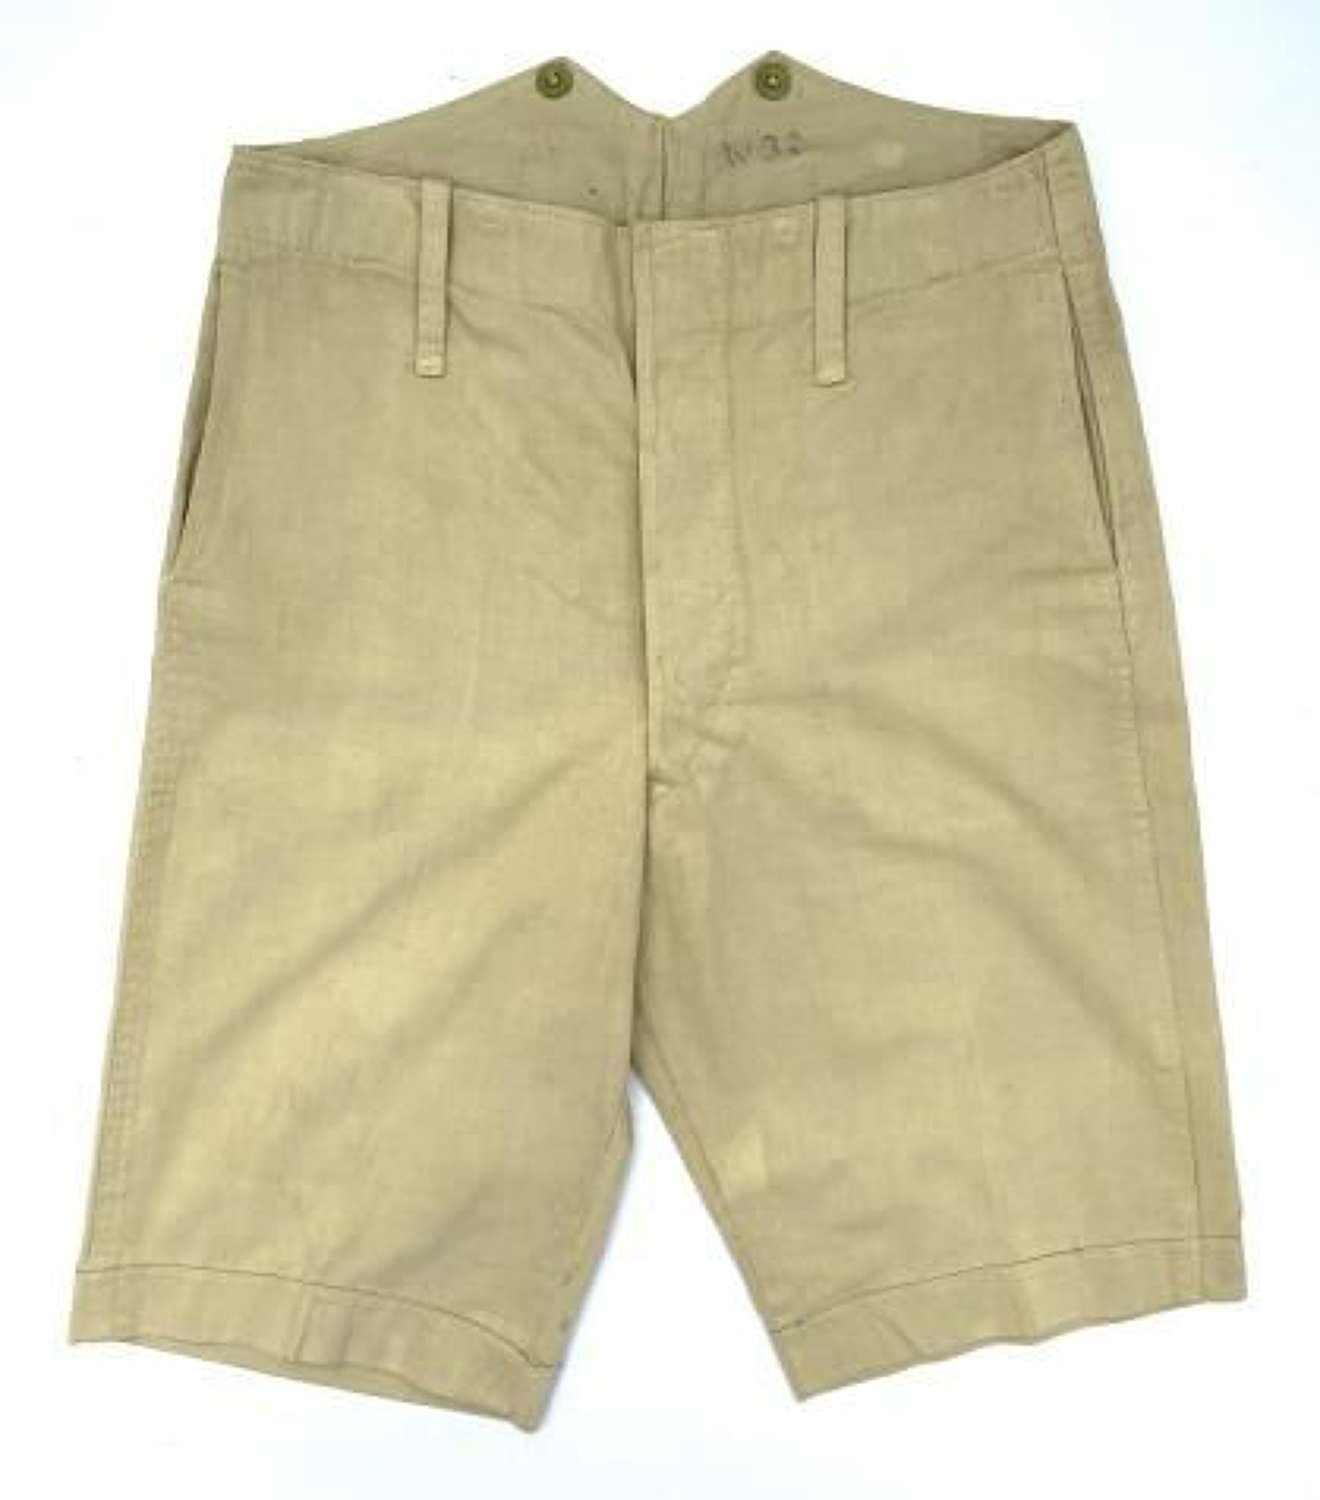 Scarce Original Inter-War British Khaki Drill Shorts